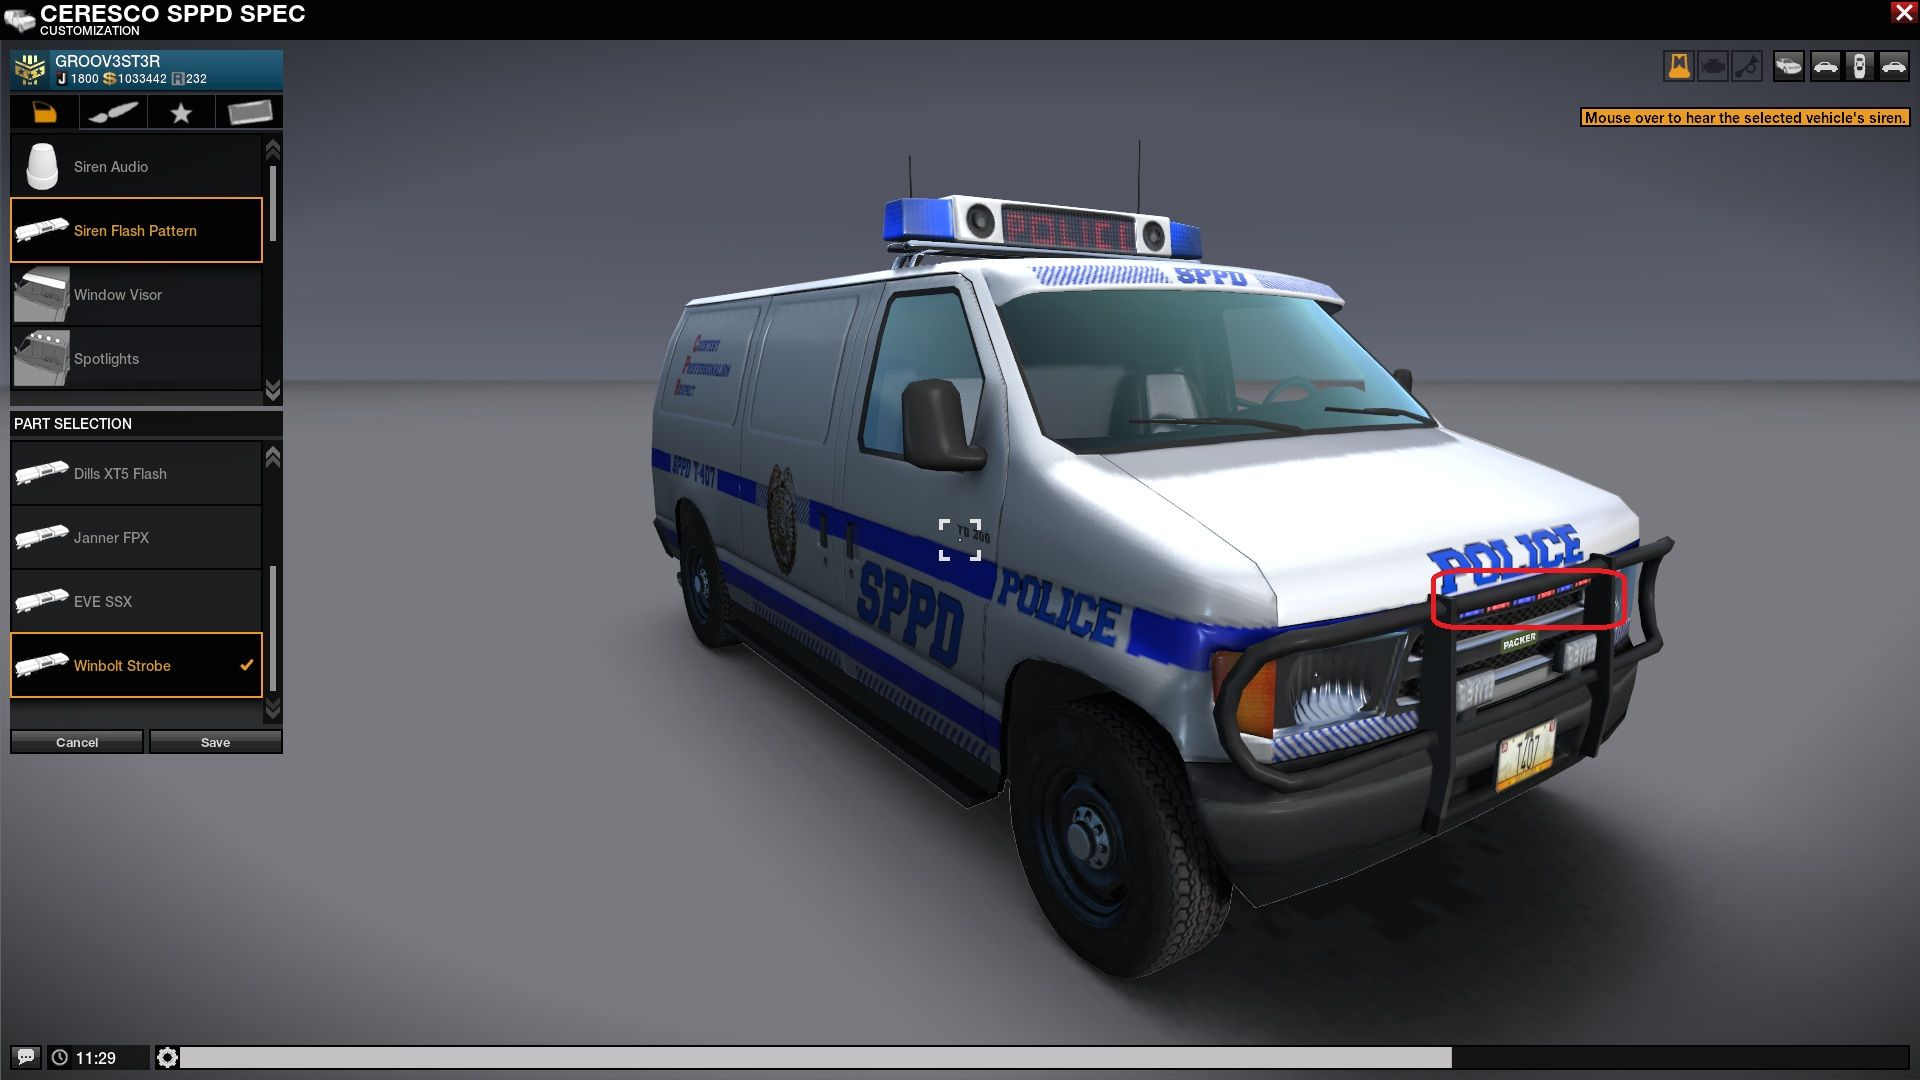 Police light bar gif fabulous megaflash fx double stack duo colour fabulous posted image with police light bar gif mozeypictures Image collections